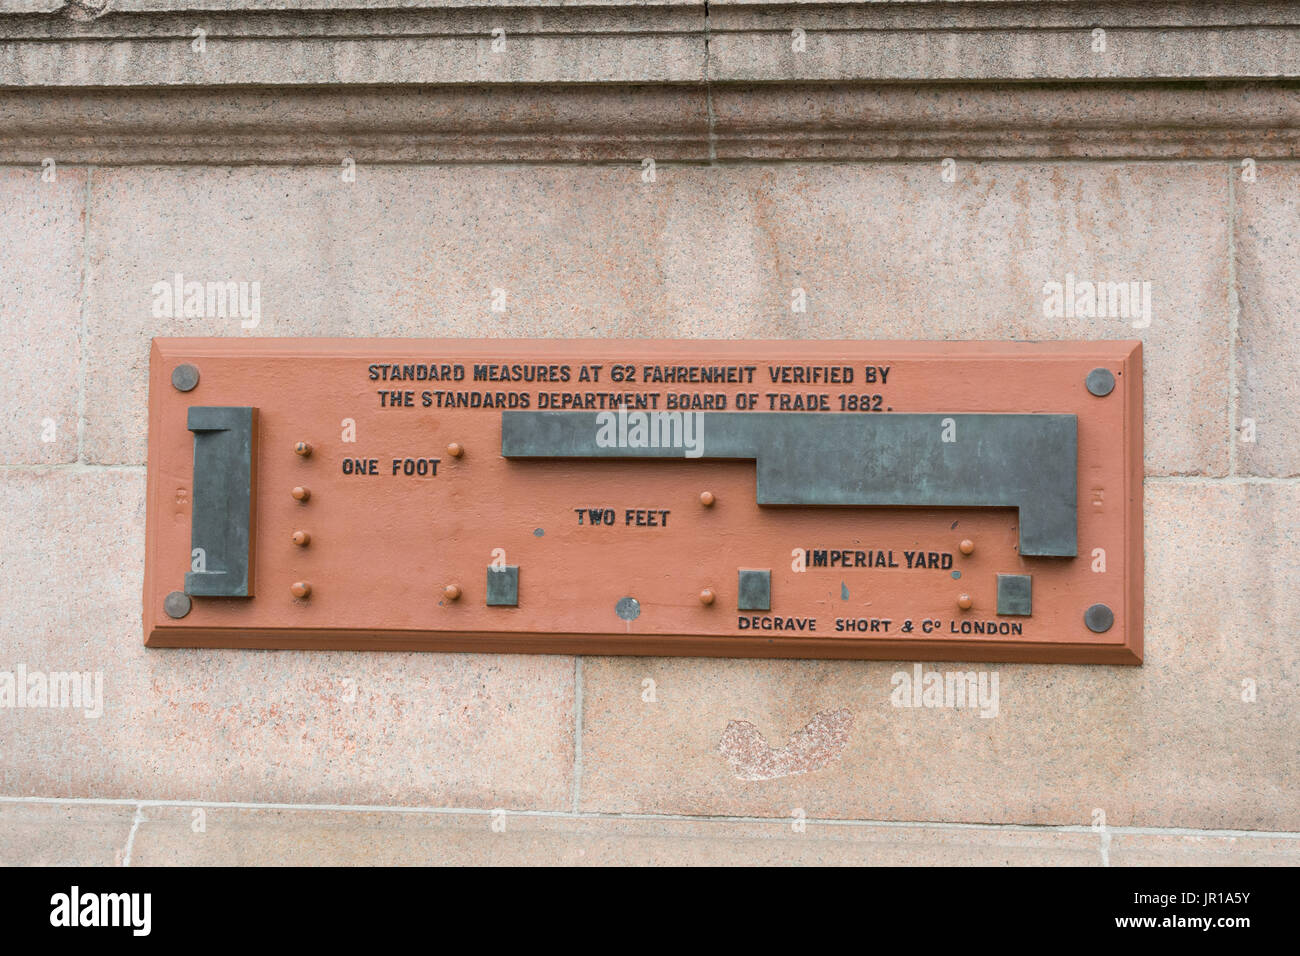 L'indicateur de mesure standard, Glasgow City Chambers, Glasgow, Écosse, Royaume-Uni Photo Stock